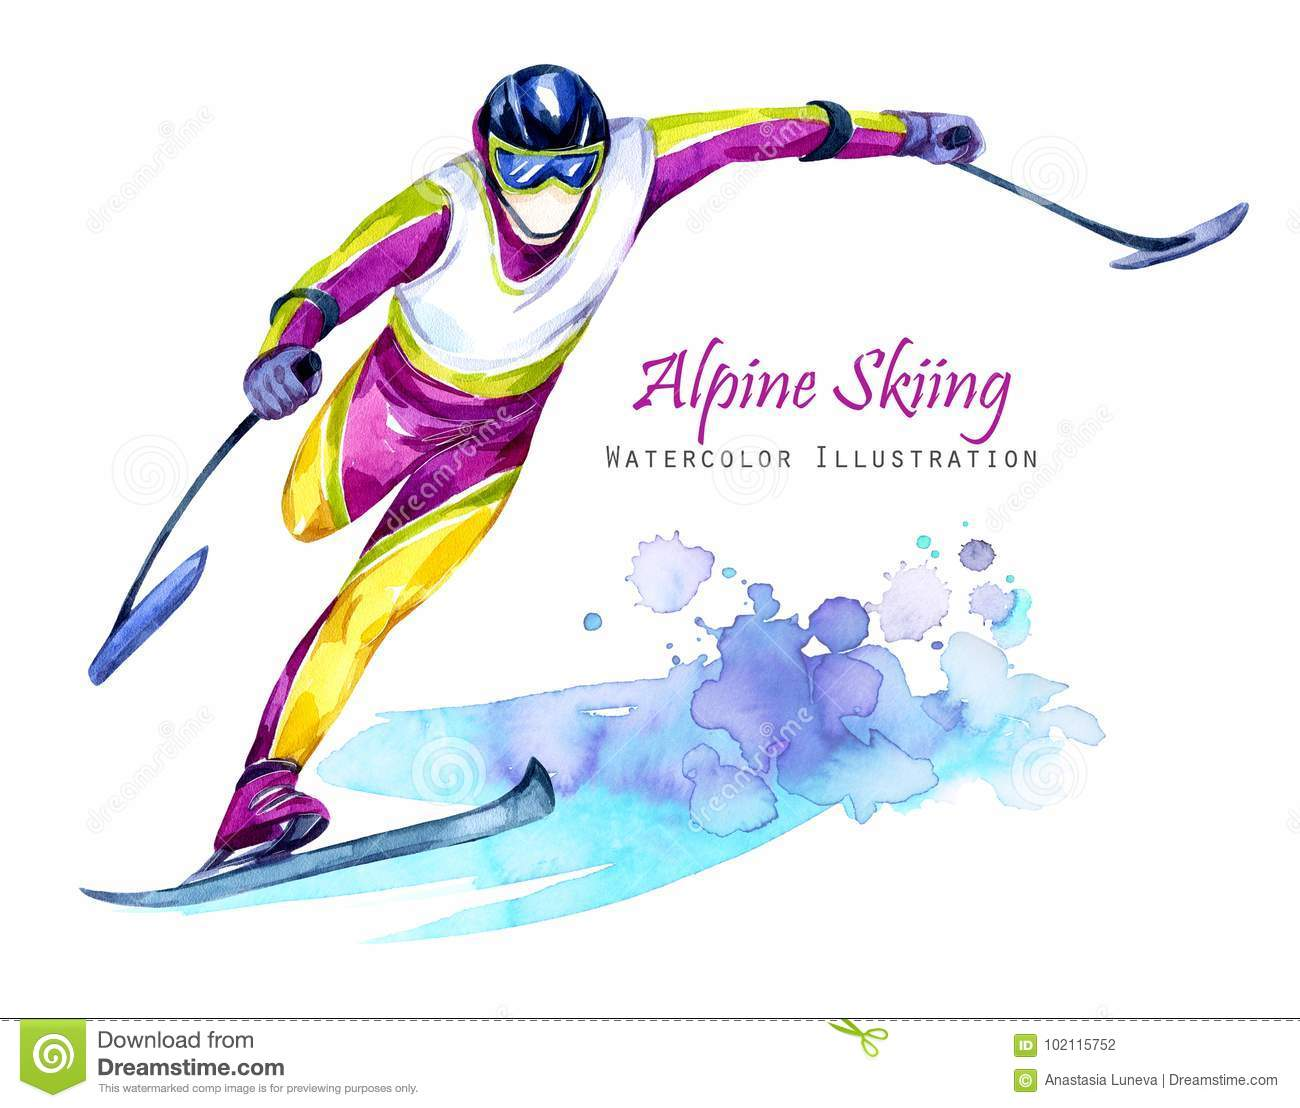 Watercolor illustration. Alpin Skiing. Disability snow sports. Disabled athlete riding by ski on snow. Active people